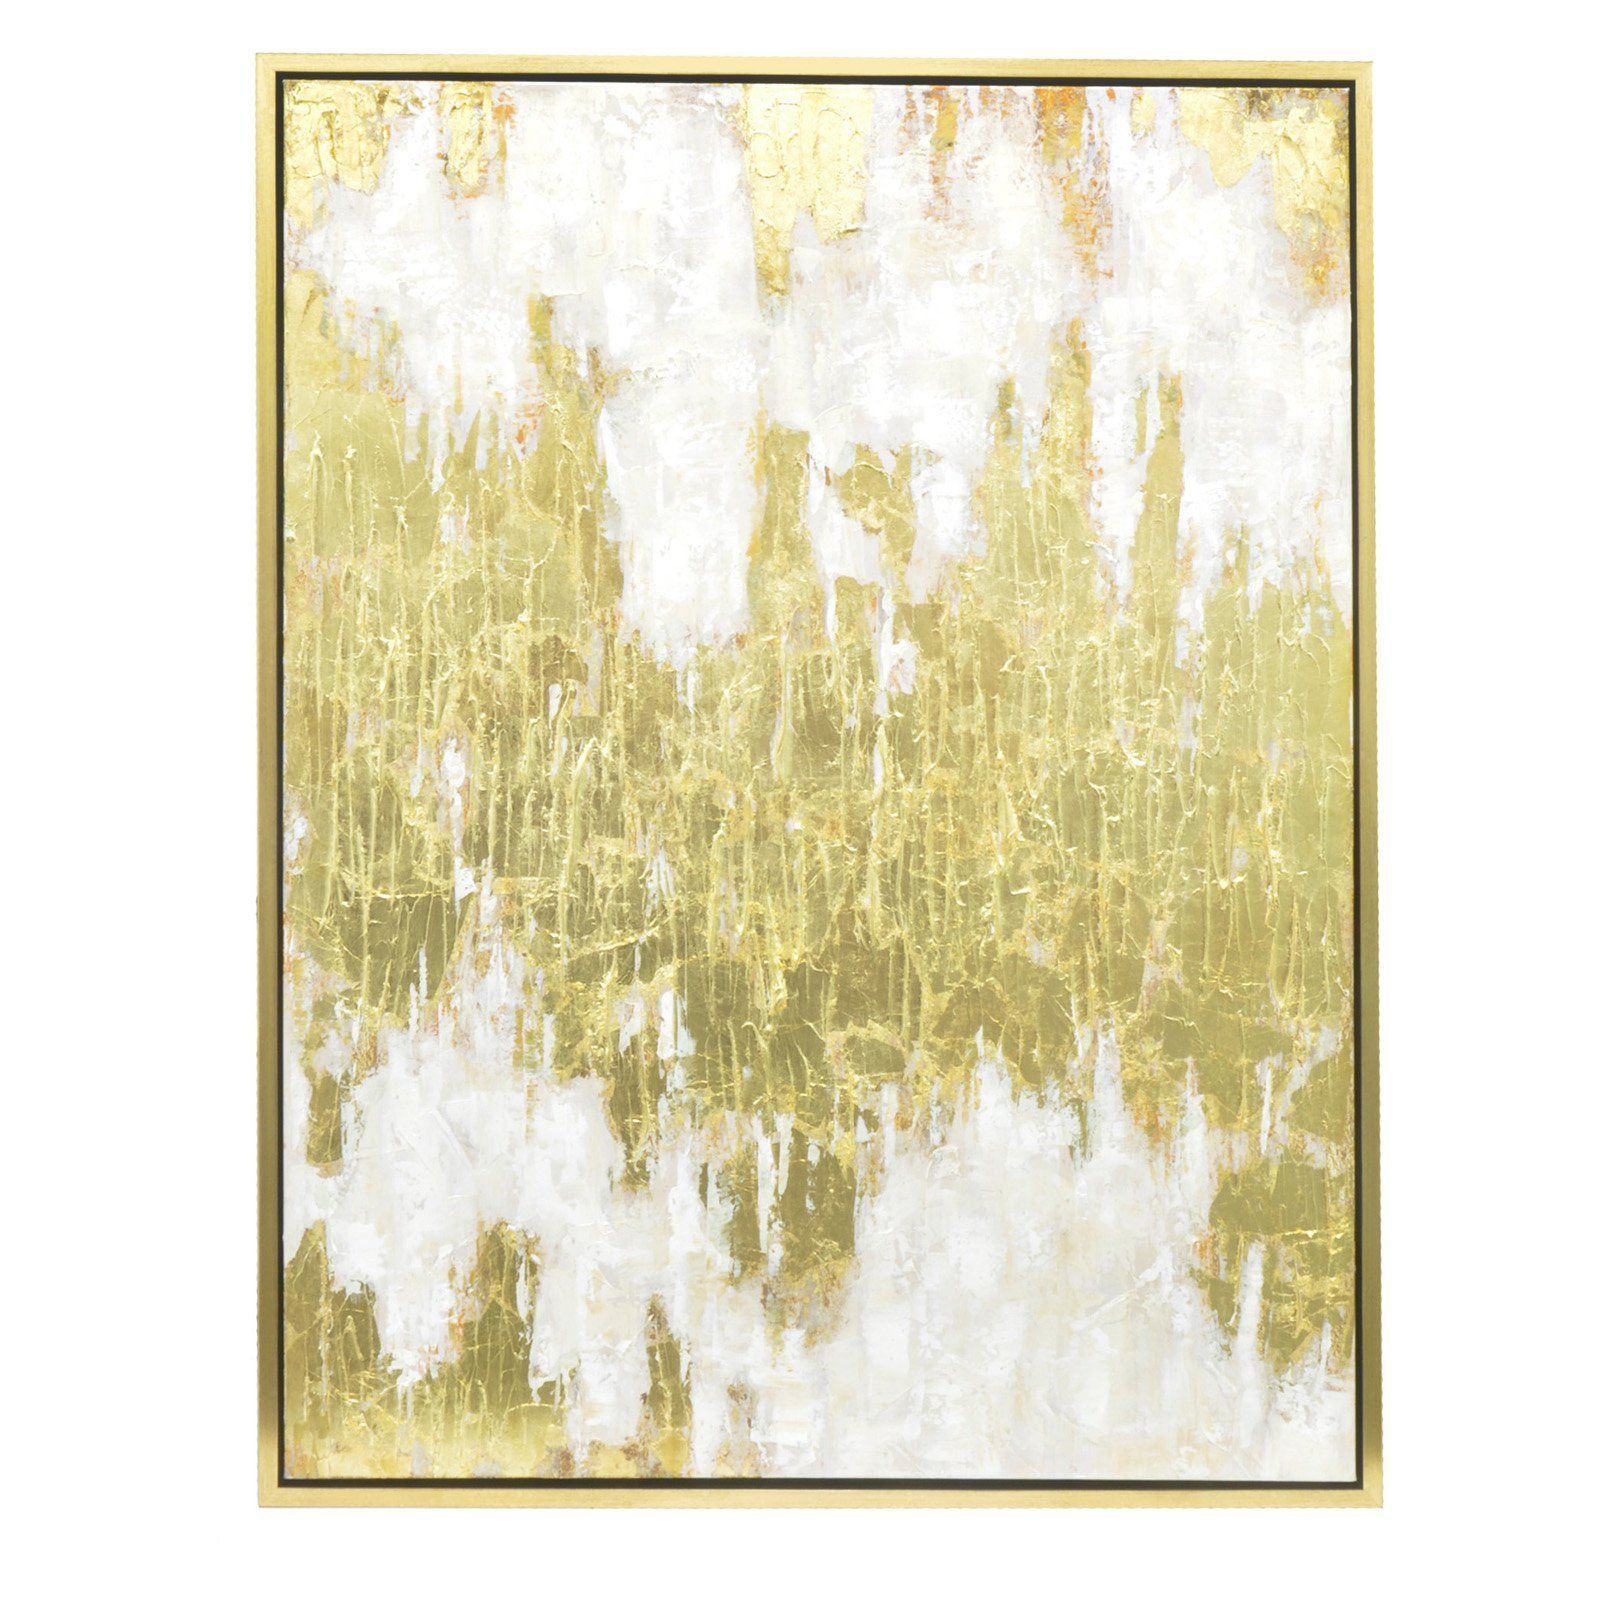 Three Hands Contemporary Gold Embellished Oil Painting Wall Art ...